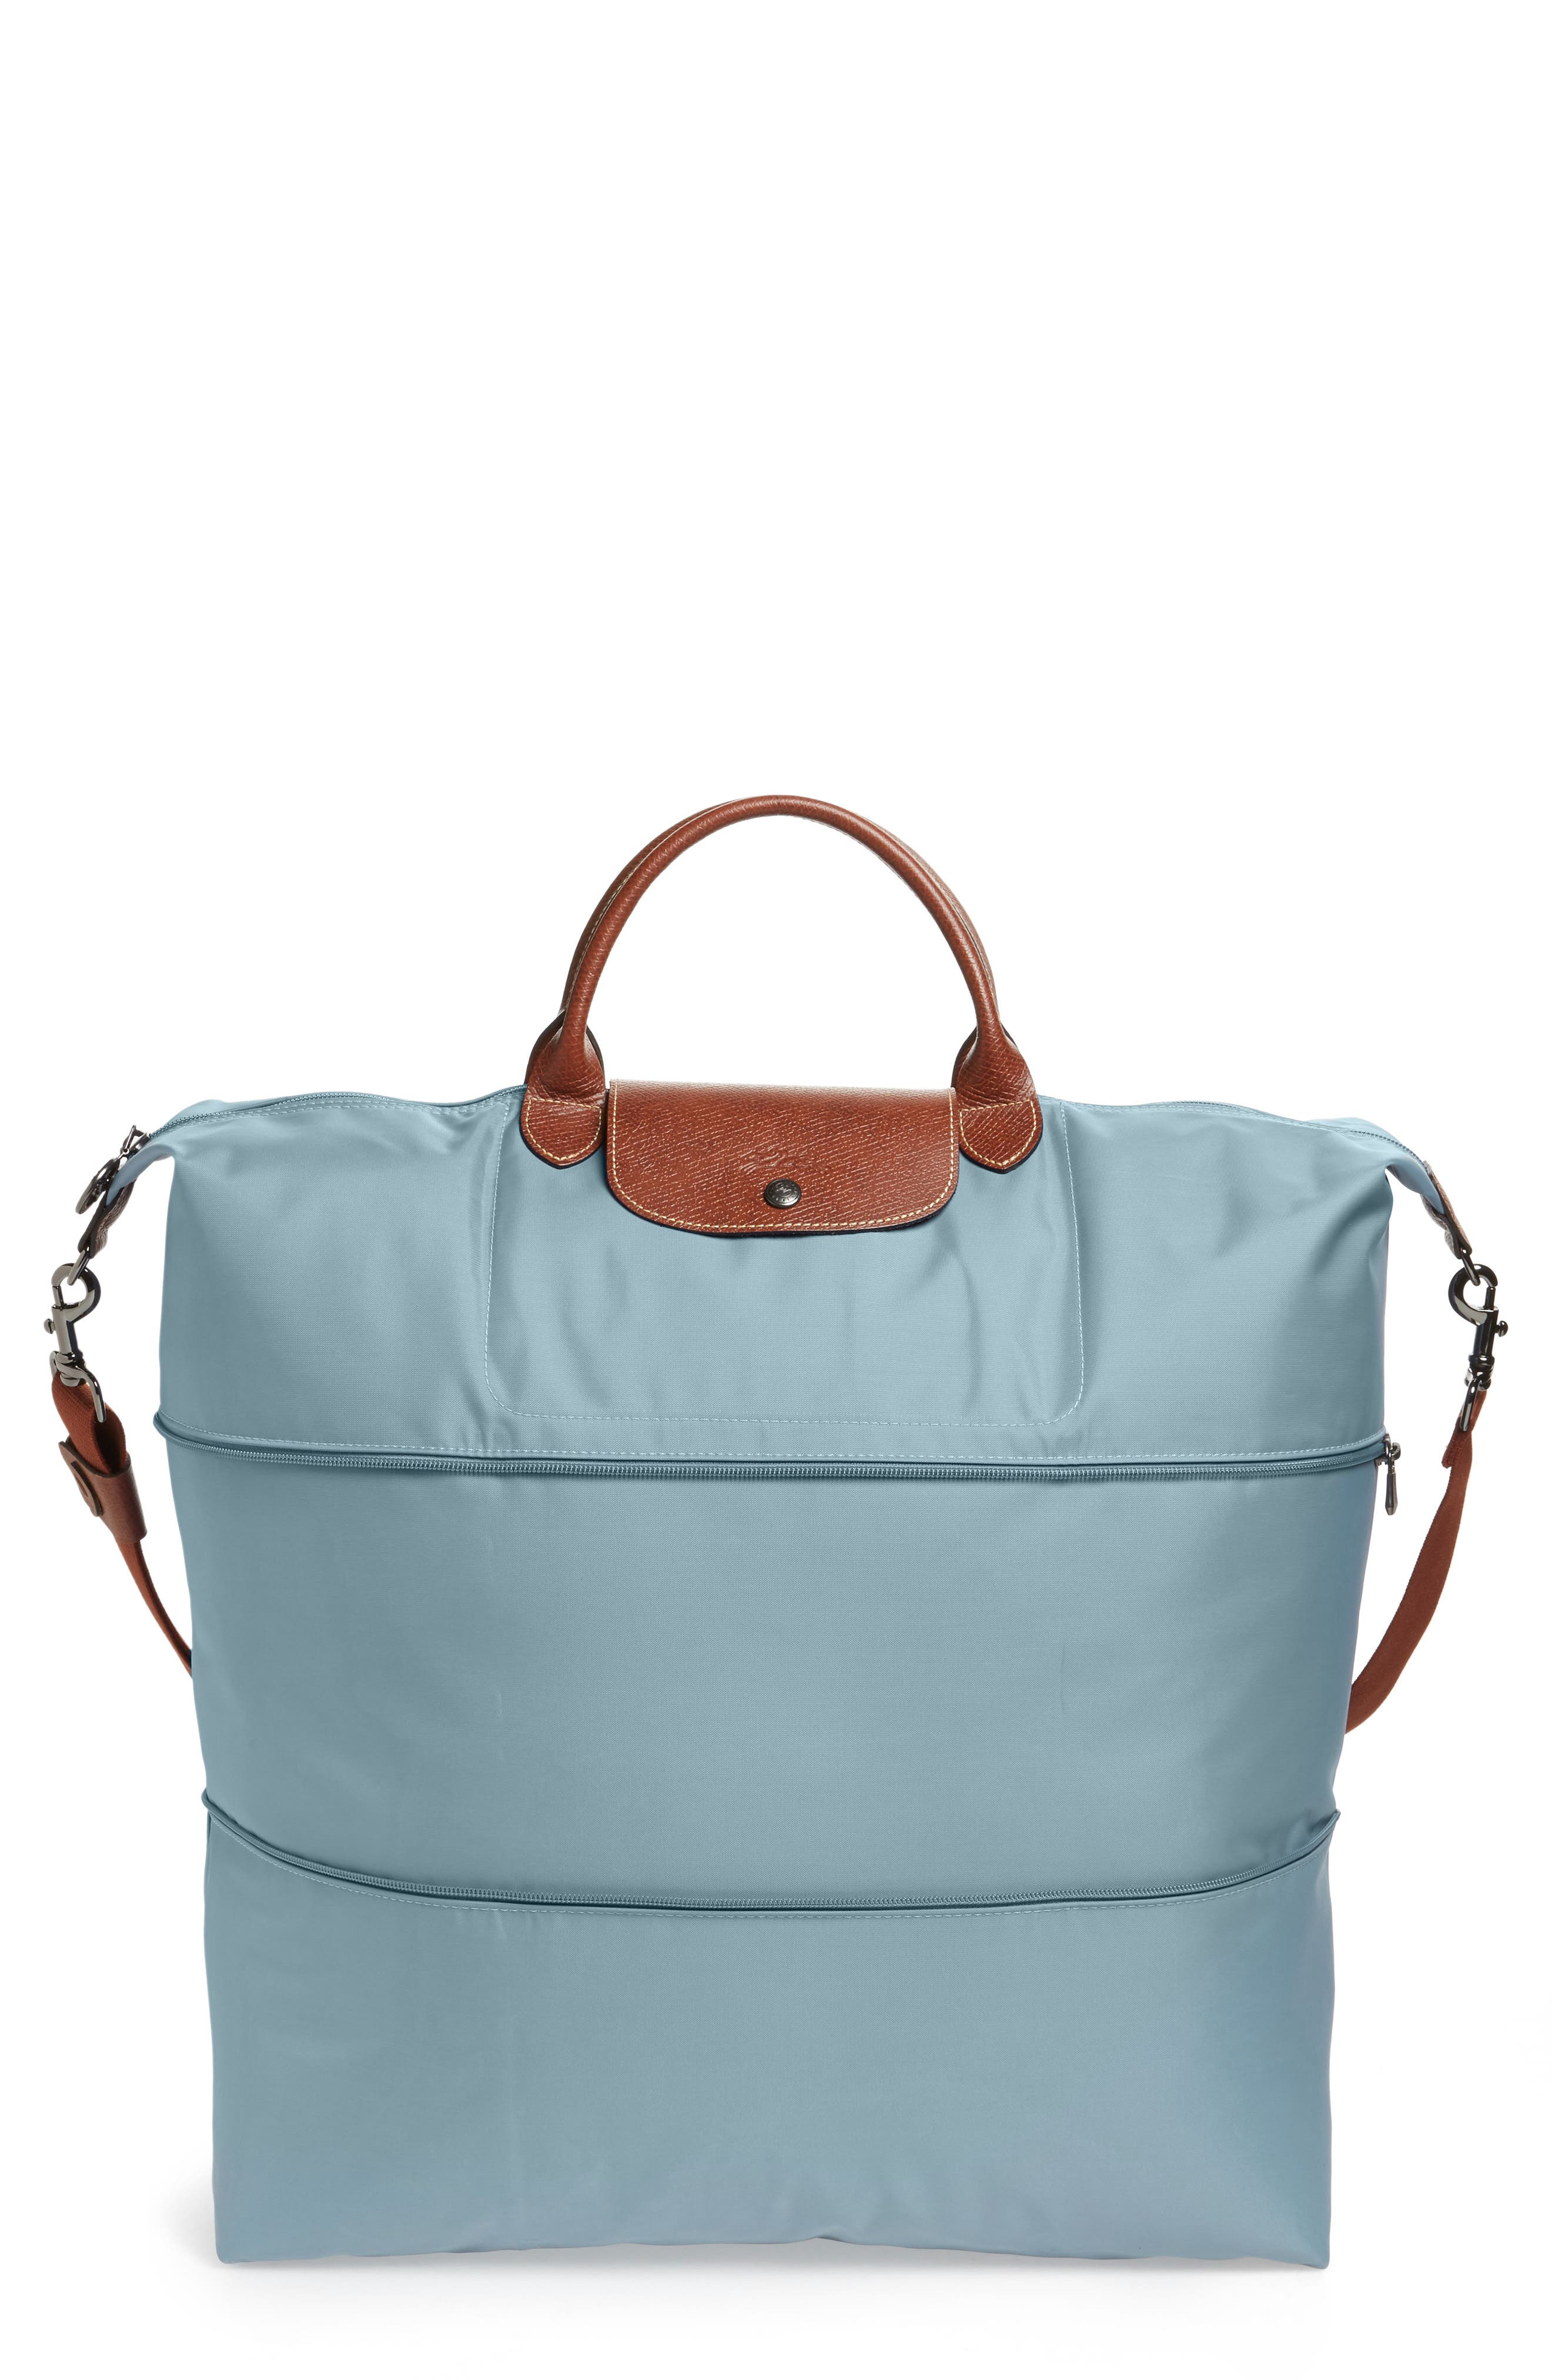 Le Pliage 21-Inch Expandable Travel Bag,                             Main thumbnail 1, color,                             Artico